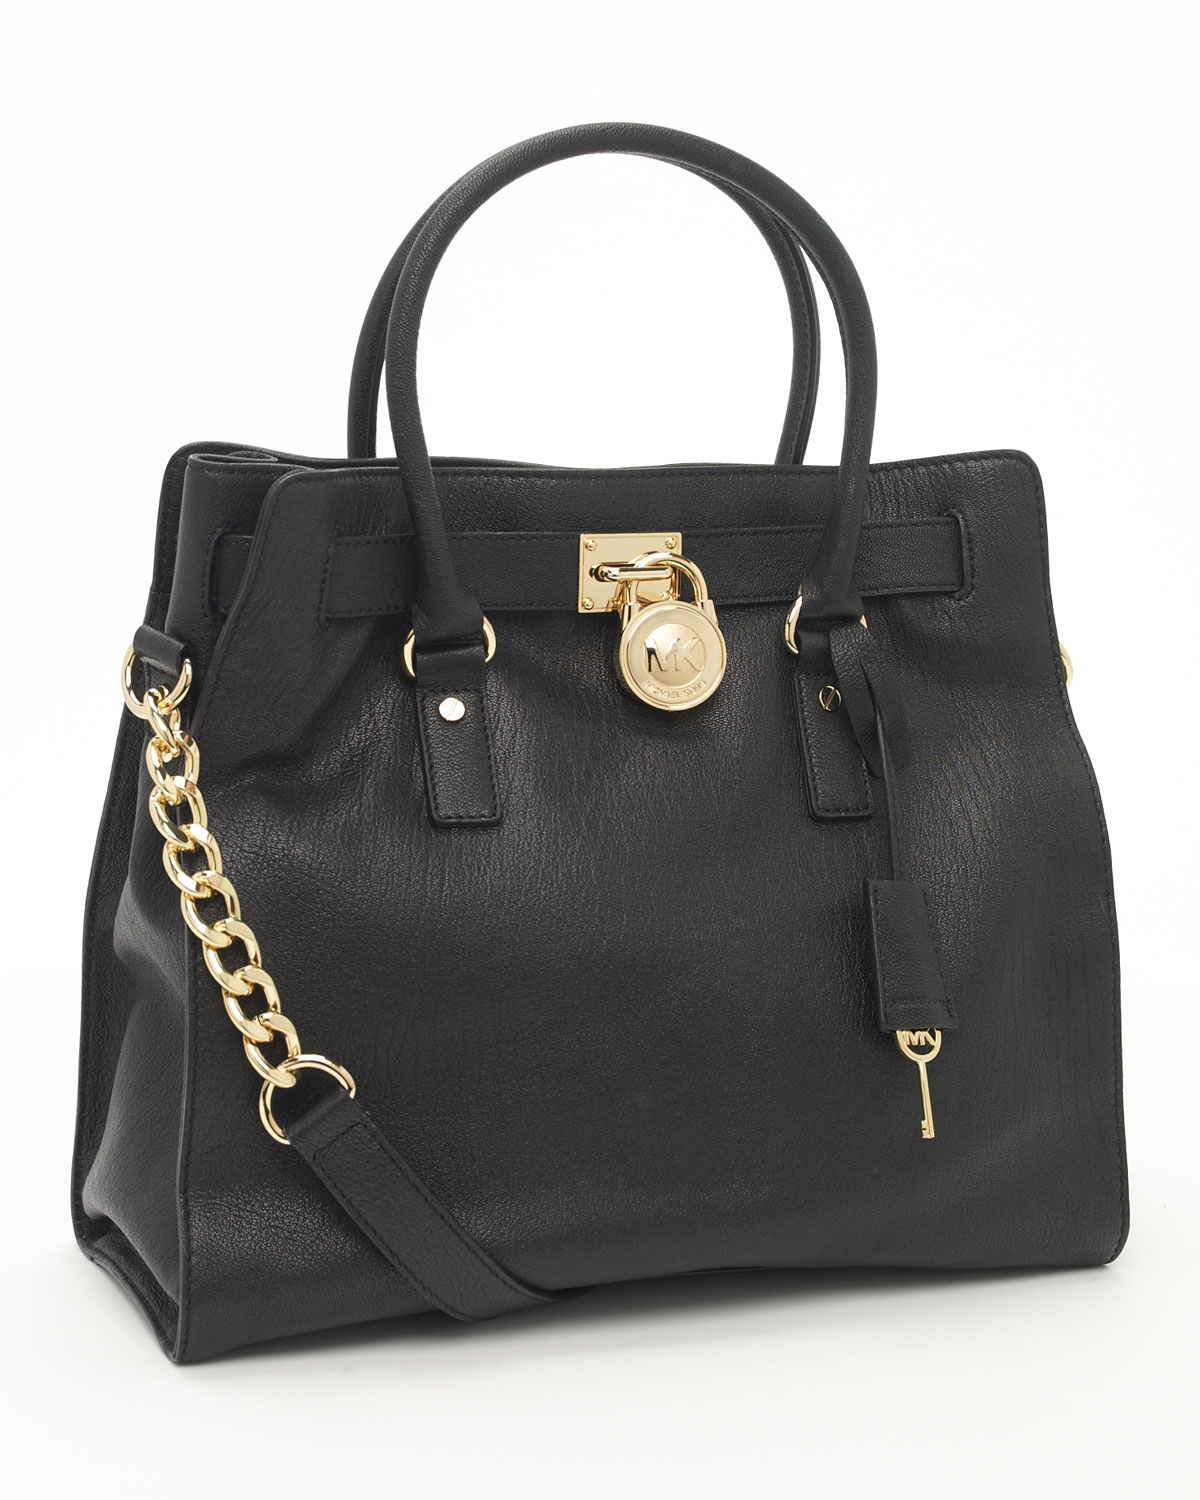 Shop michael michael kors grey bags from Celine, Michael Kors, MICHAEL Michael Kors and from Farfetch, Italist, Lord & Taylor and many more. Find thousands of new high fashion items in one place.